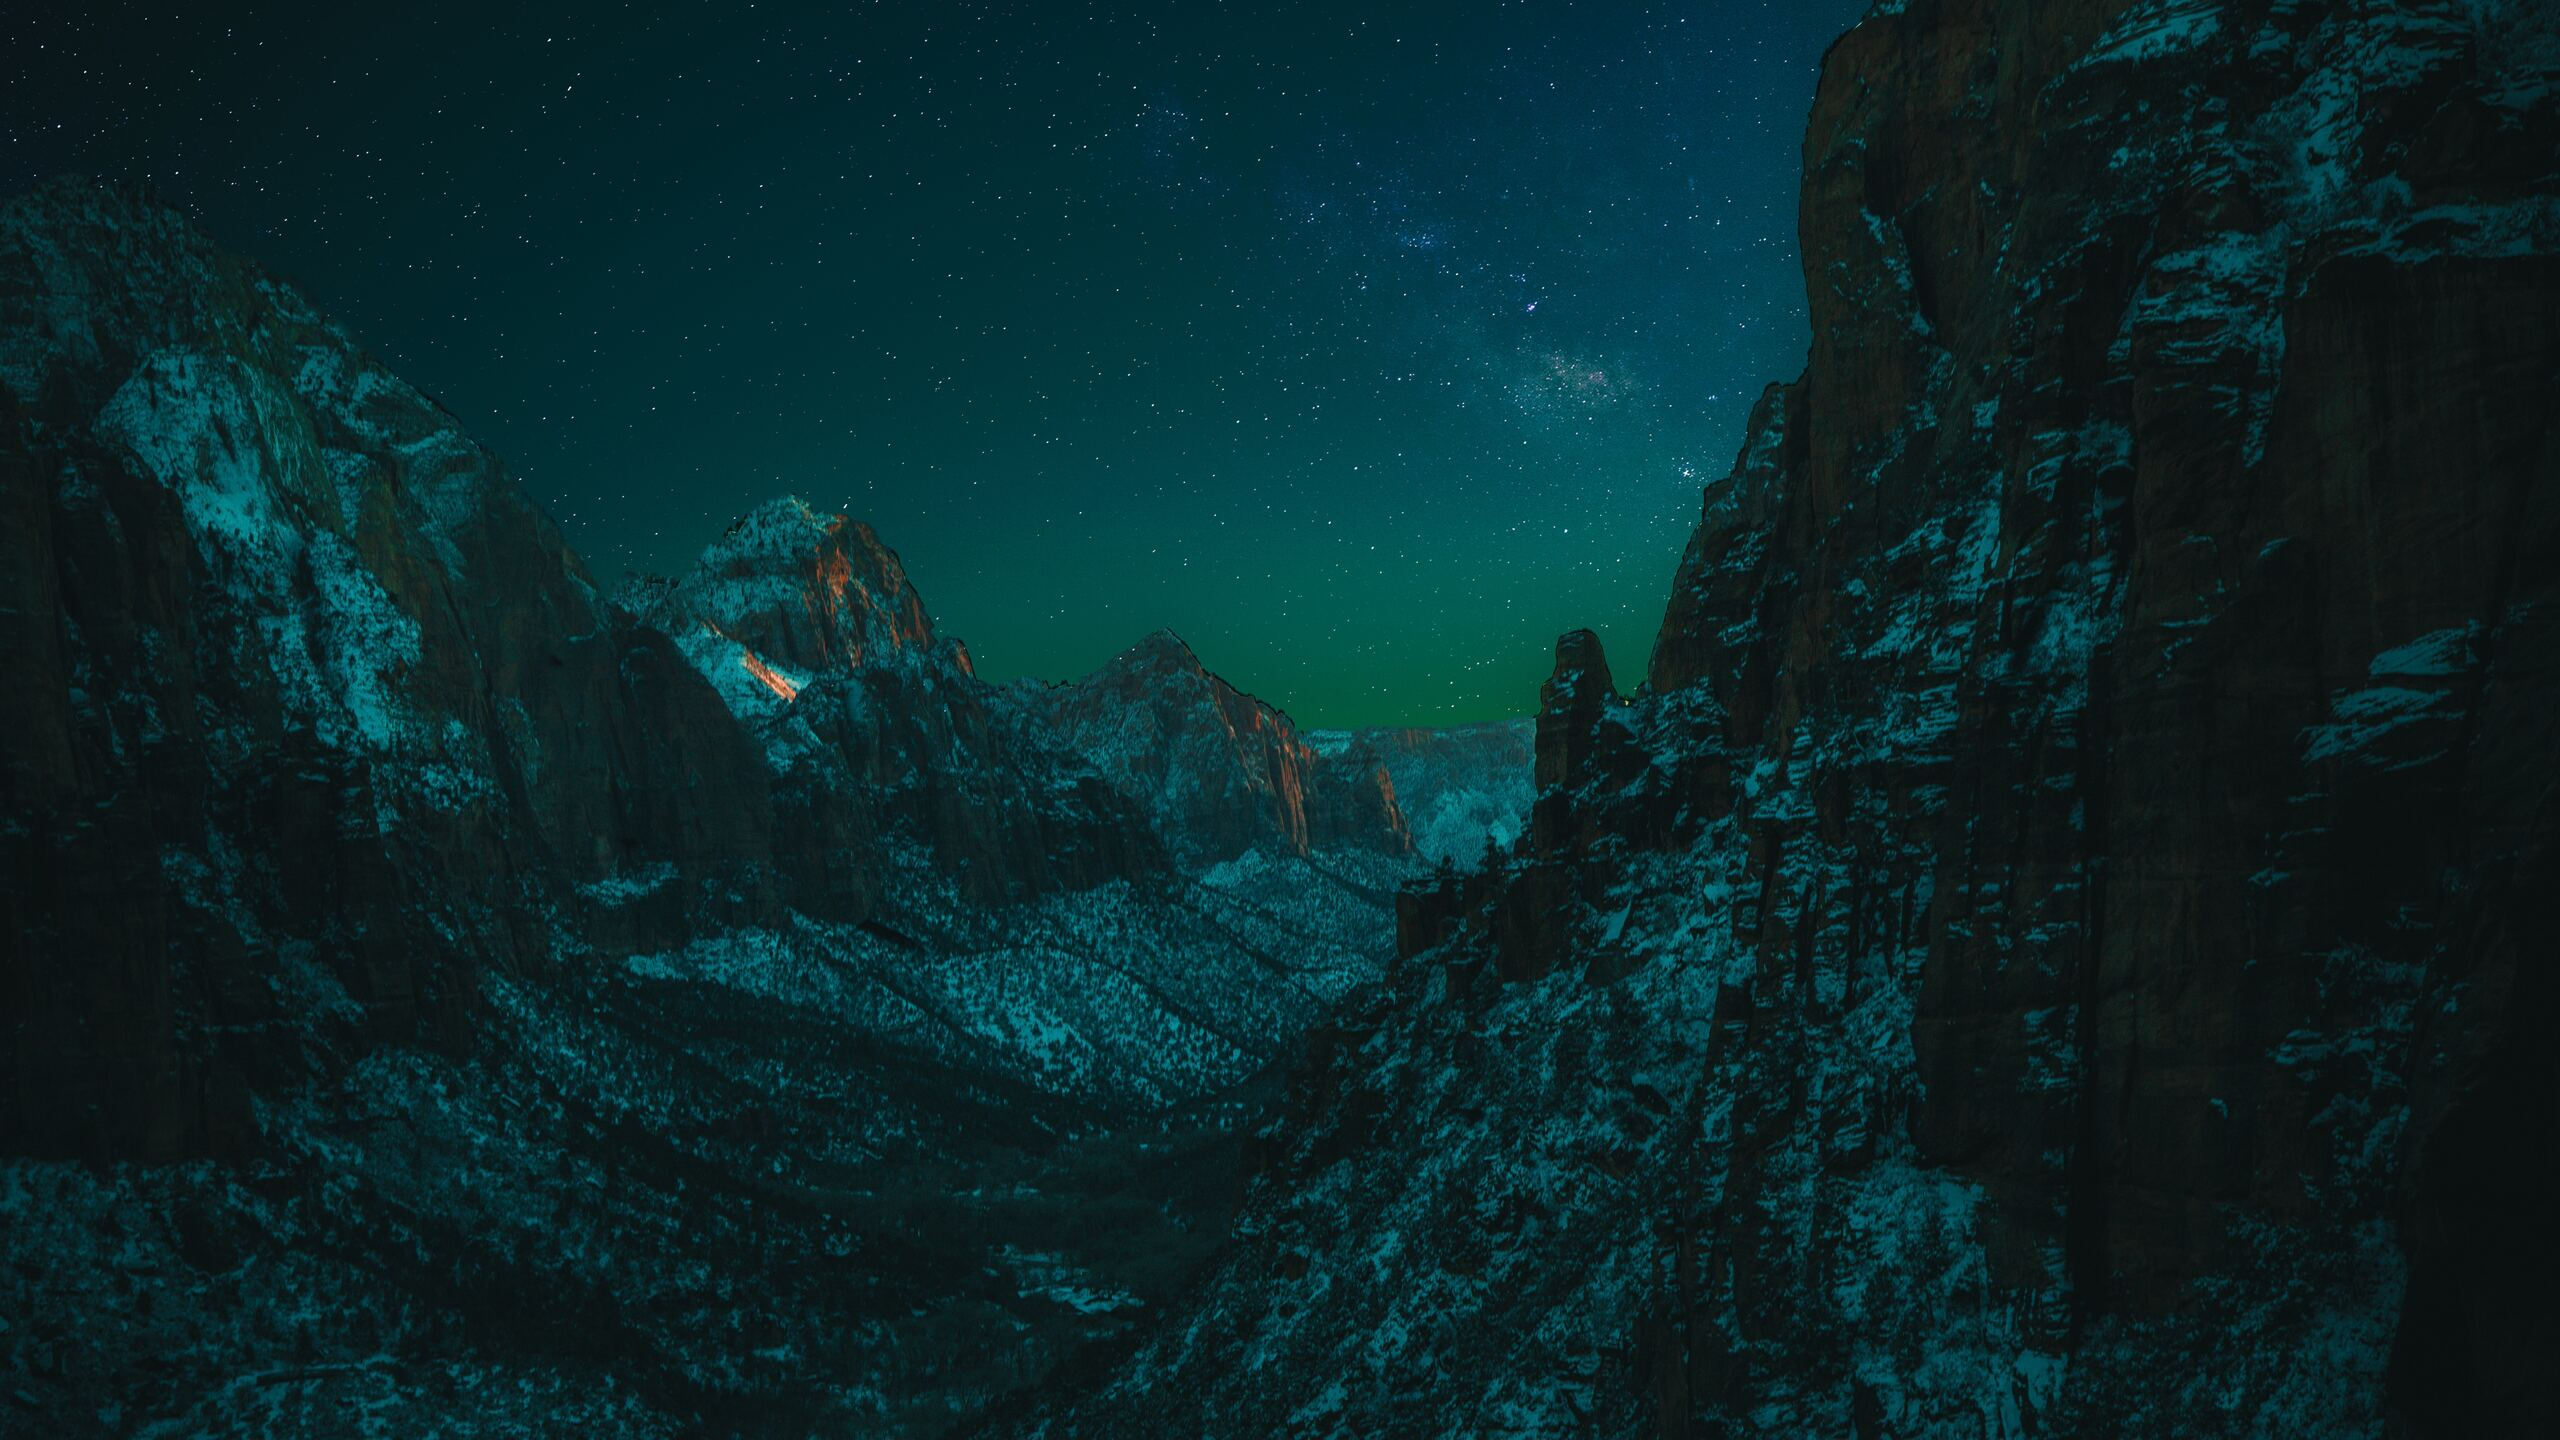 2560x1440 Starry Night In Zion National Park 5k 1440p